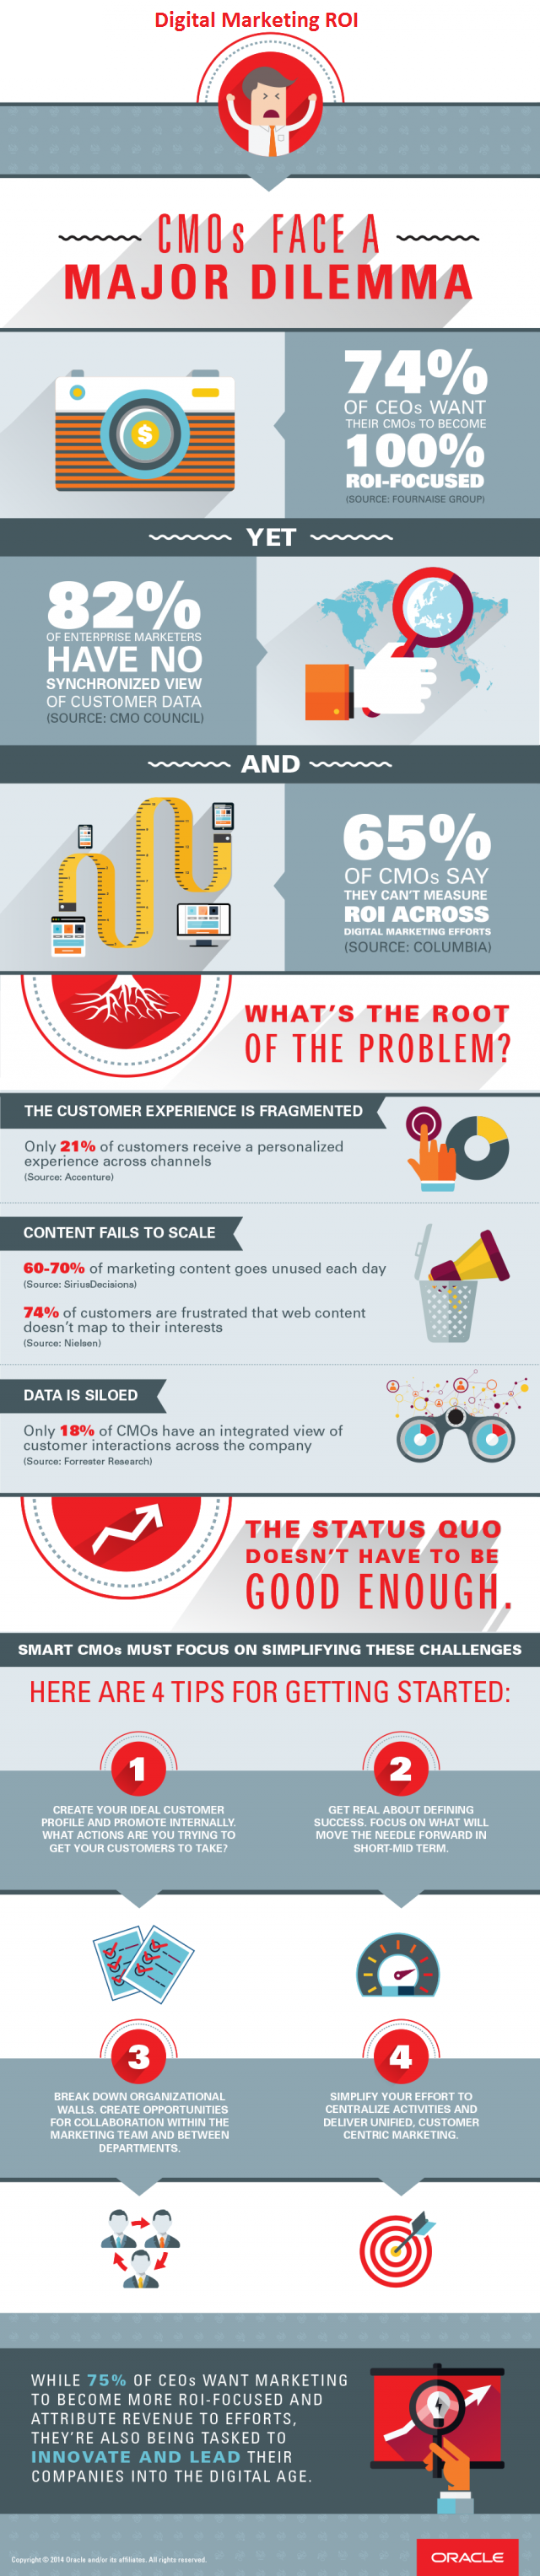 Why Agile Works Best to Realize Digital Marketing ROI